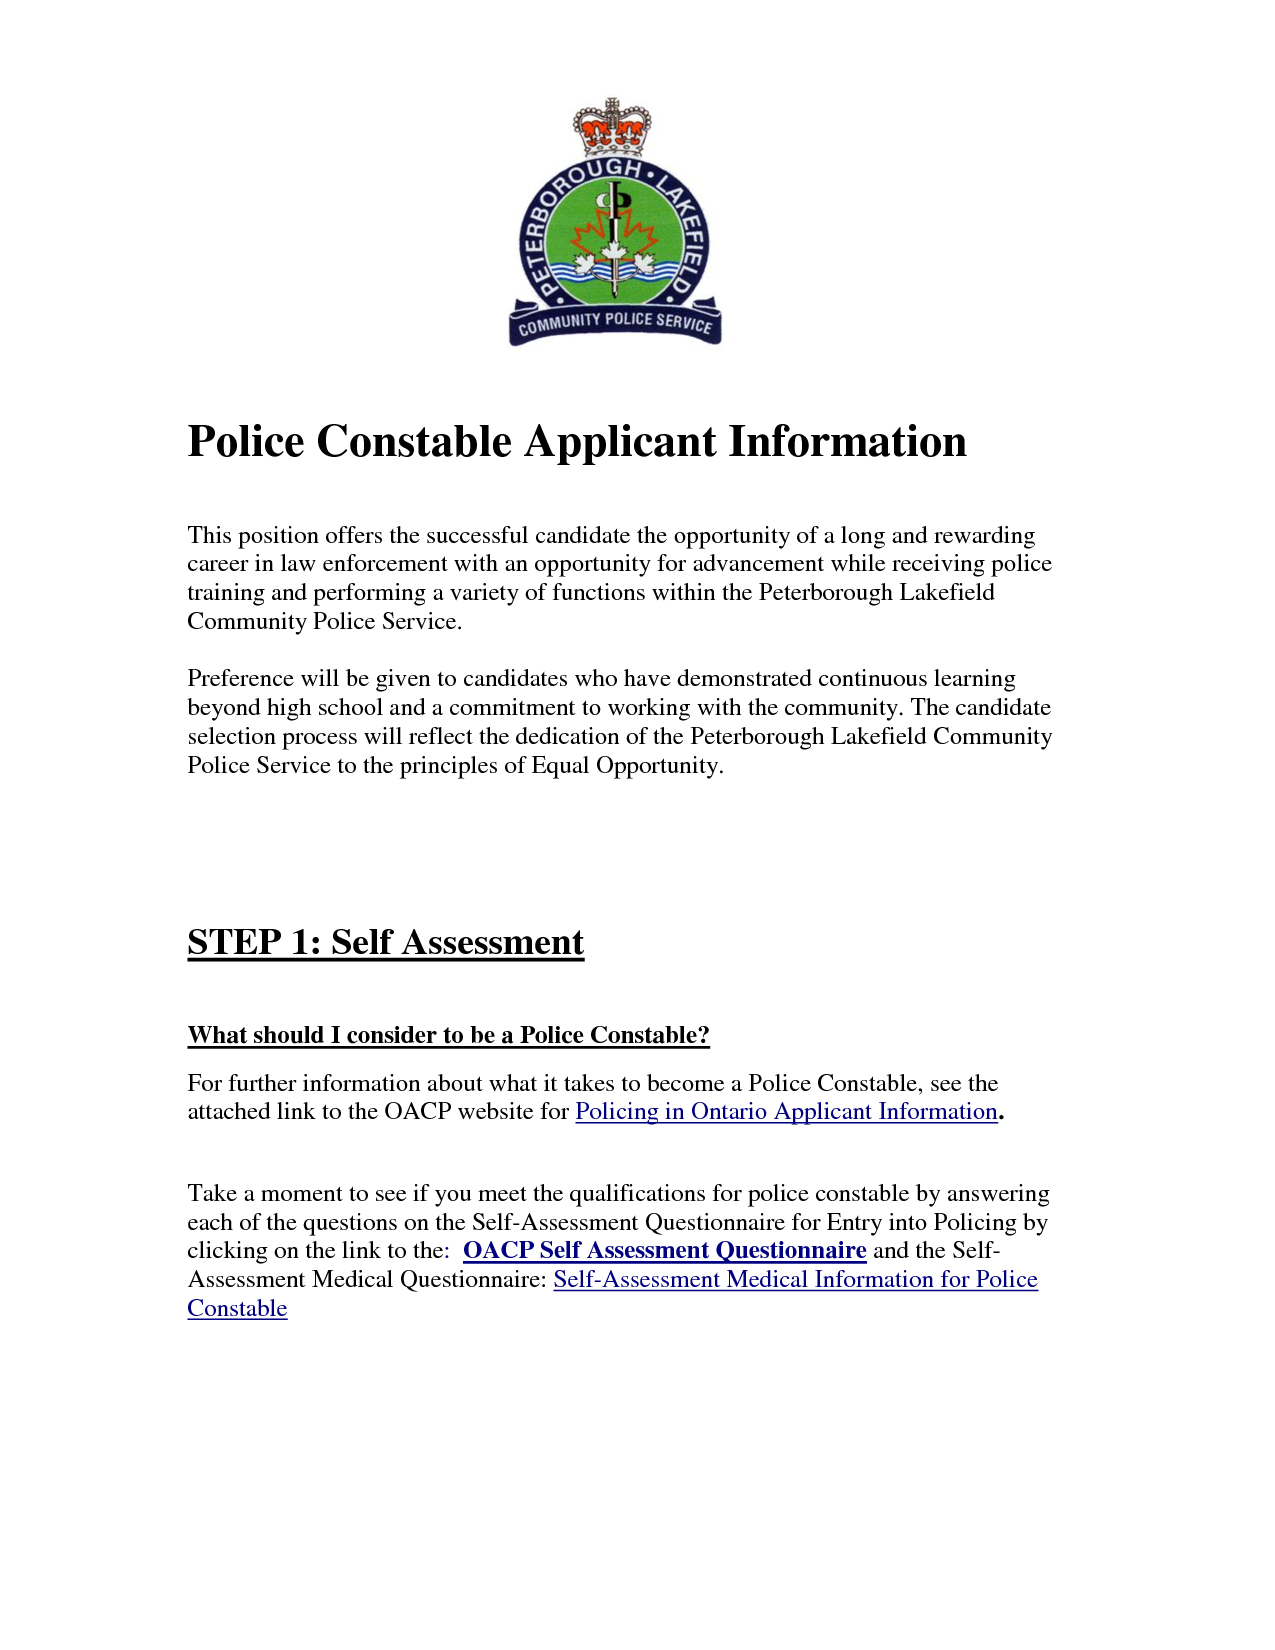 Police Constable Resume By Bdr12071 Cover Latter Sample